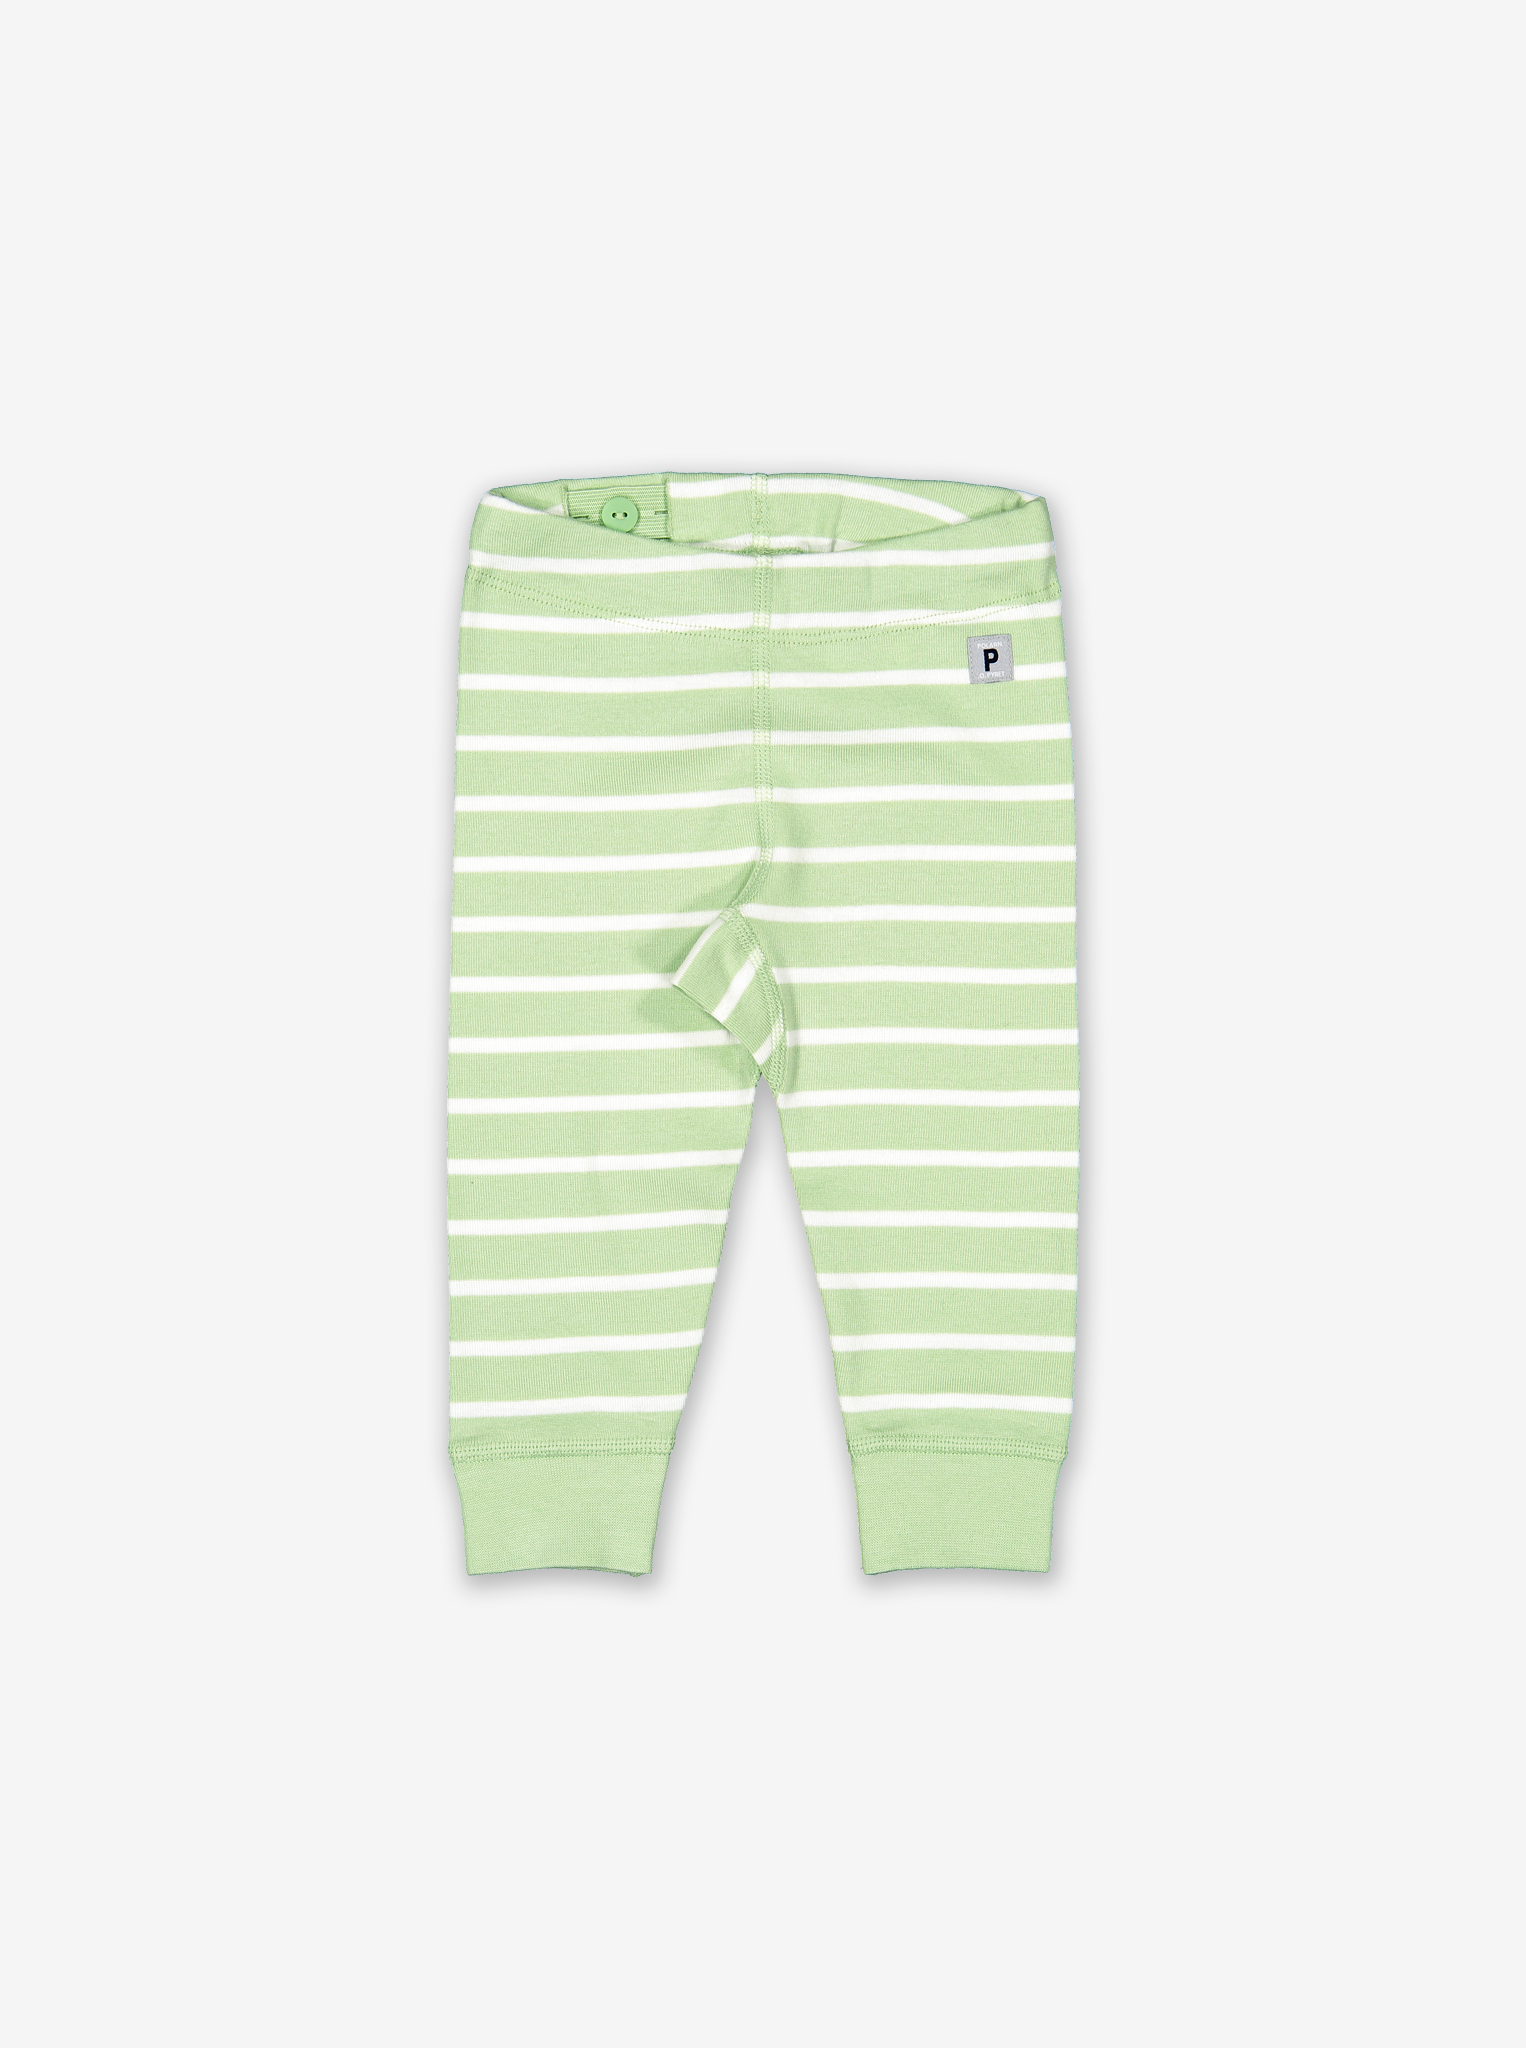 Striped Baby Leggings-Unisex-0-1y-Green